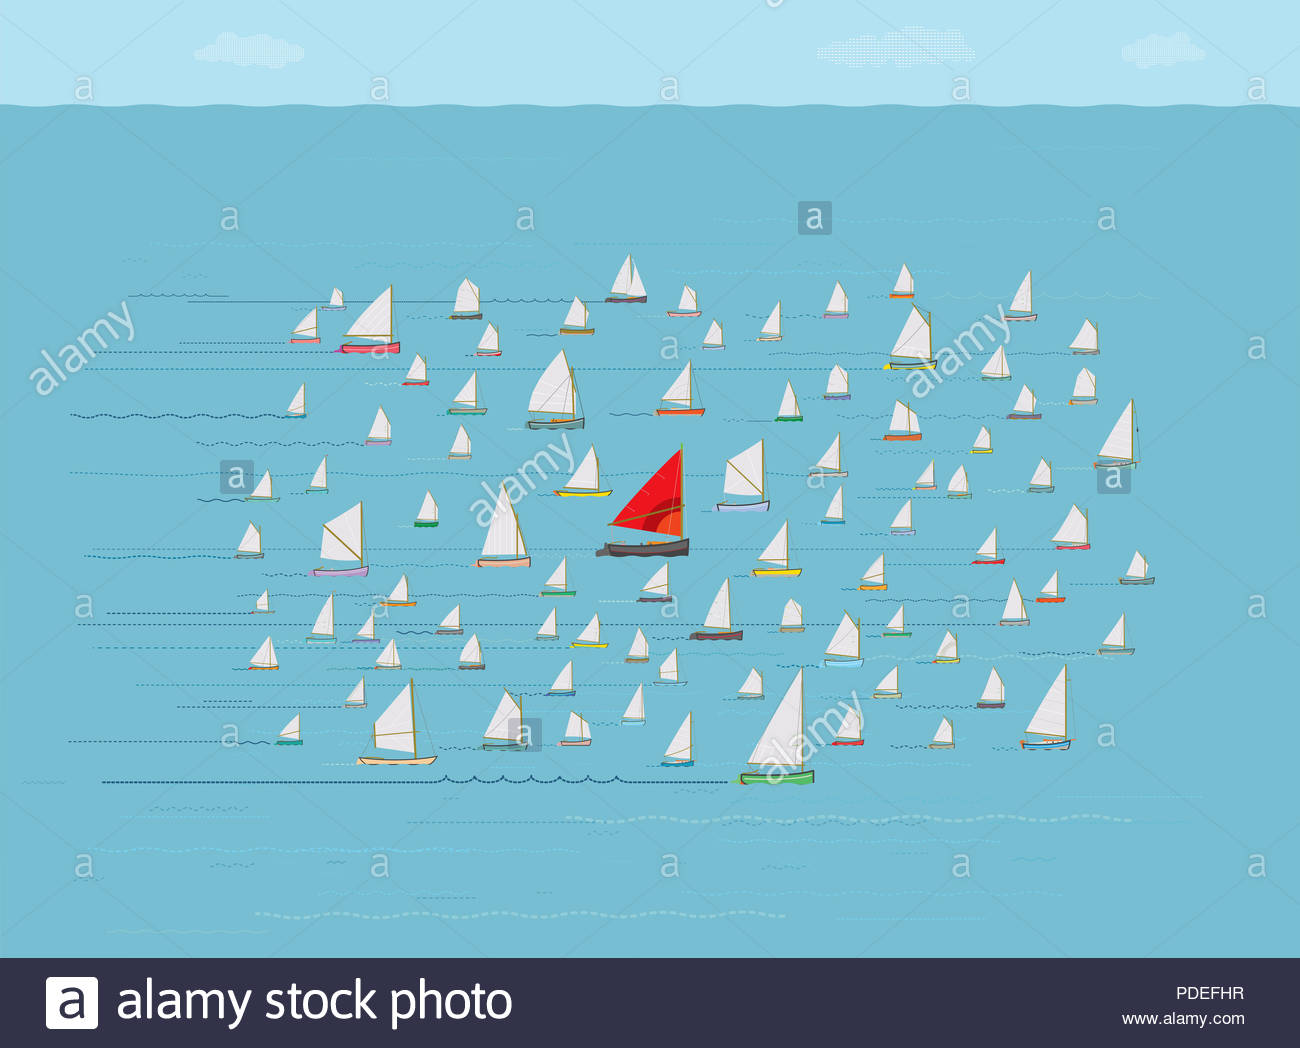 Go With The Flow Sailboat, Going along with the Crowd, Safety in Numbers, Nautical, Concepts and Ideas, Same Direction, Running with the Pack - Stock Image